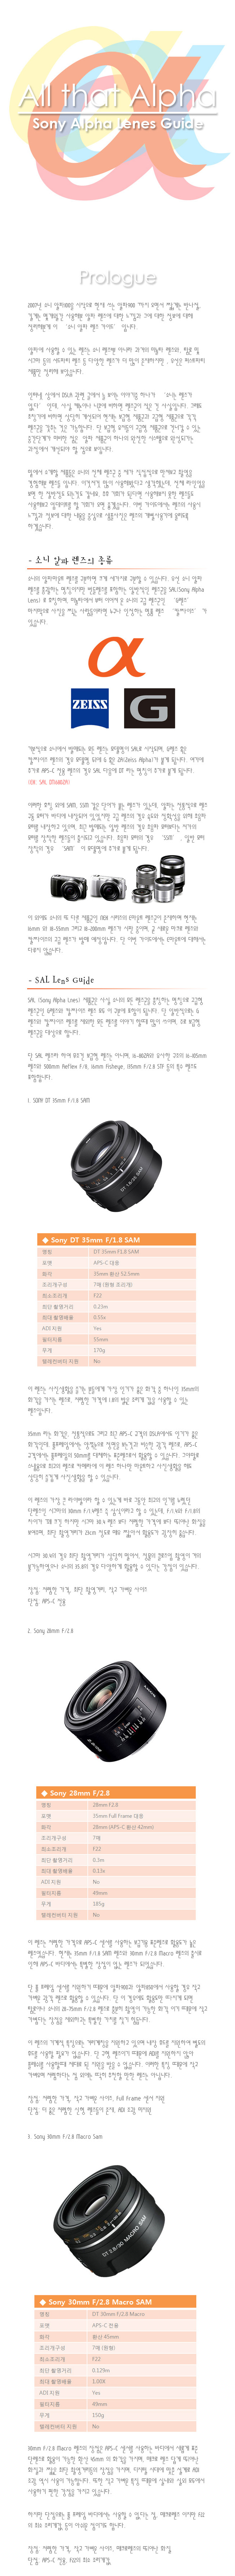 Sony Alpha Lens Guide